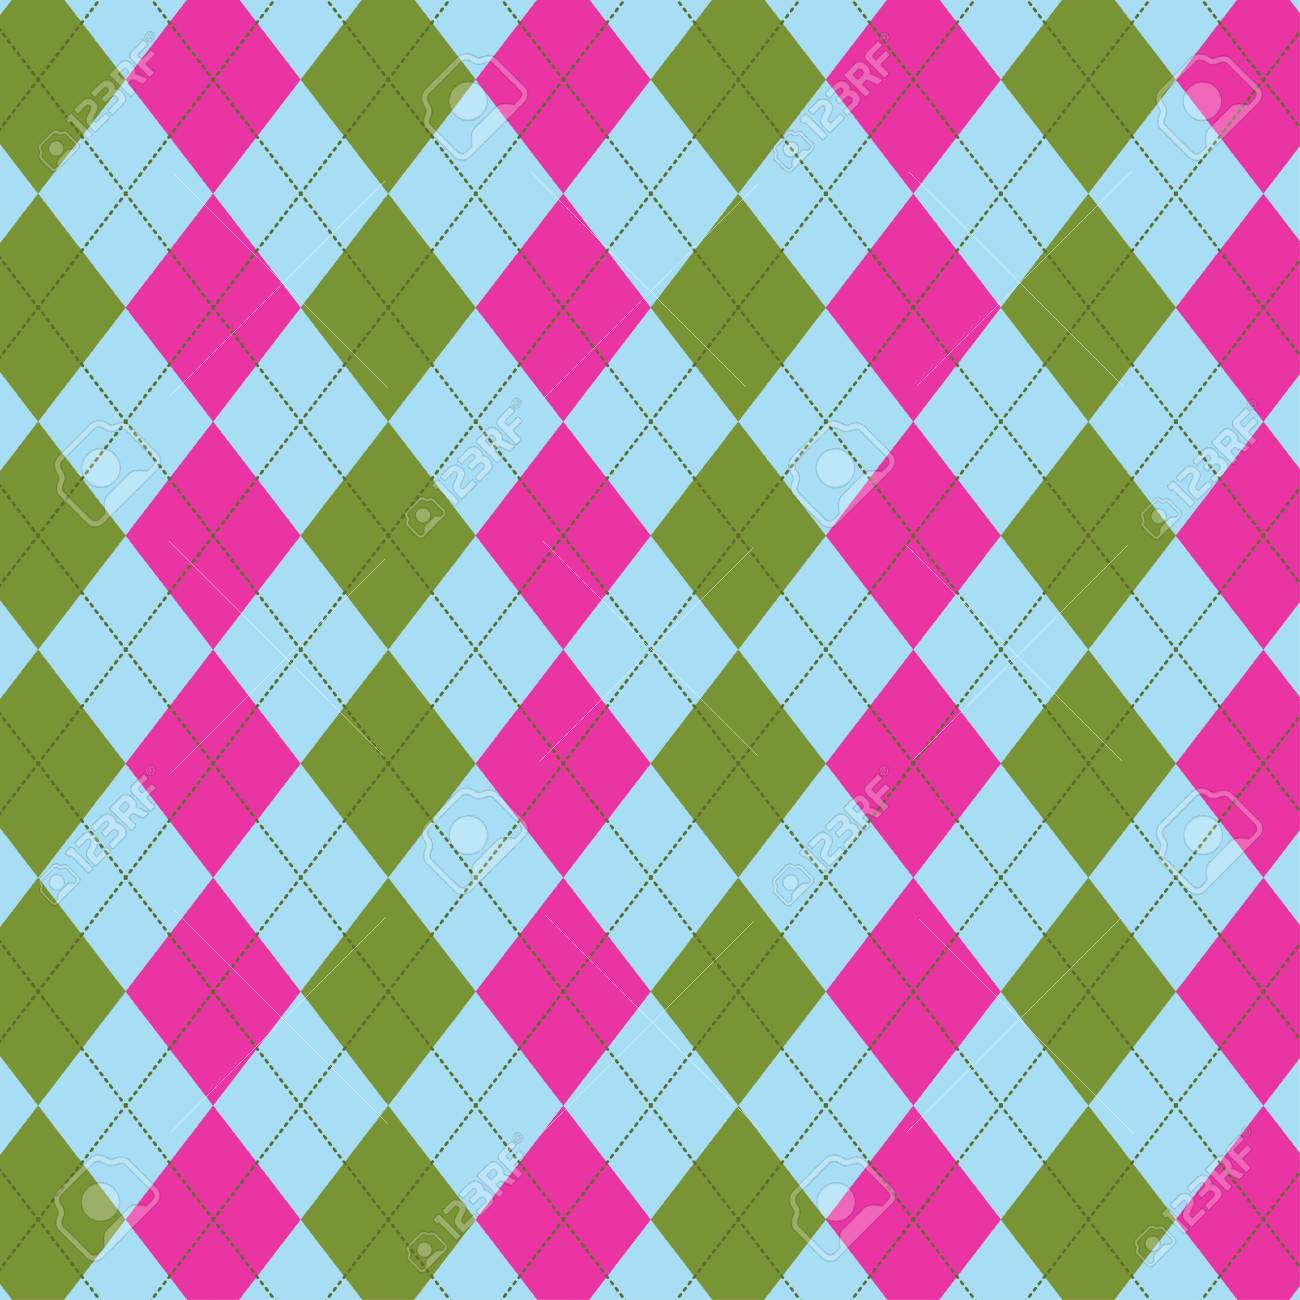 Argile Pattern Simple Inspiration Design